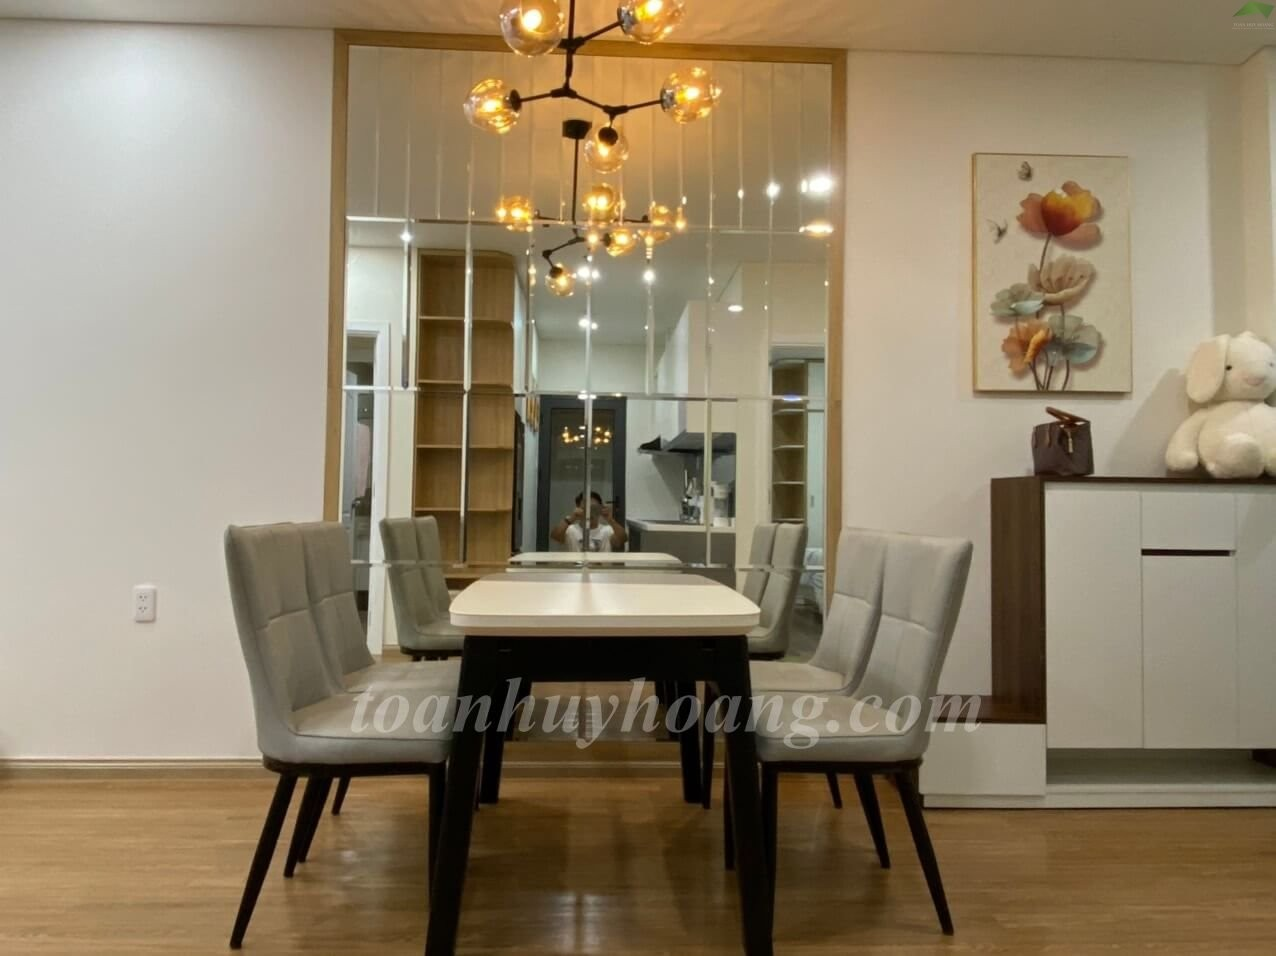 fully-furnished-2-bedroom-apartment-for-rent